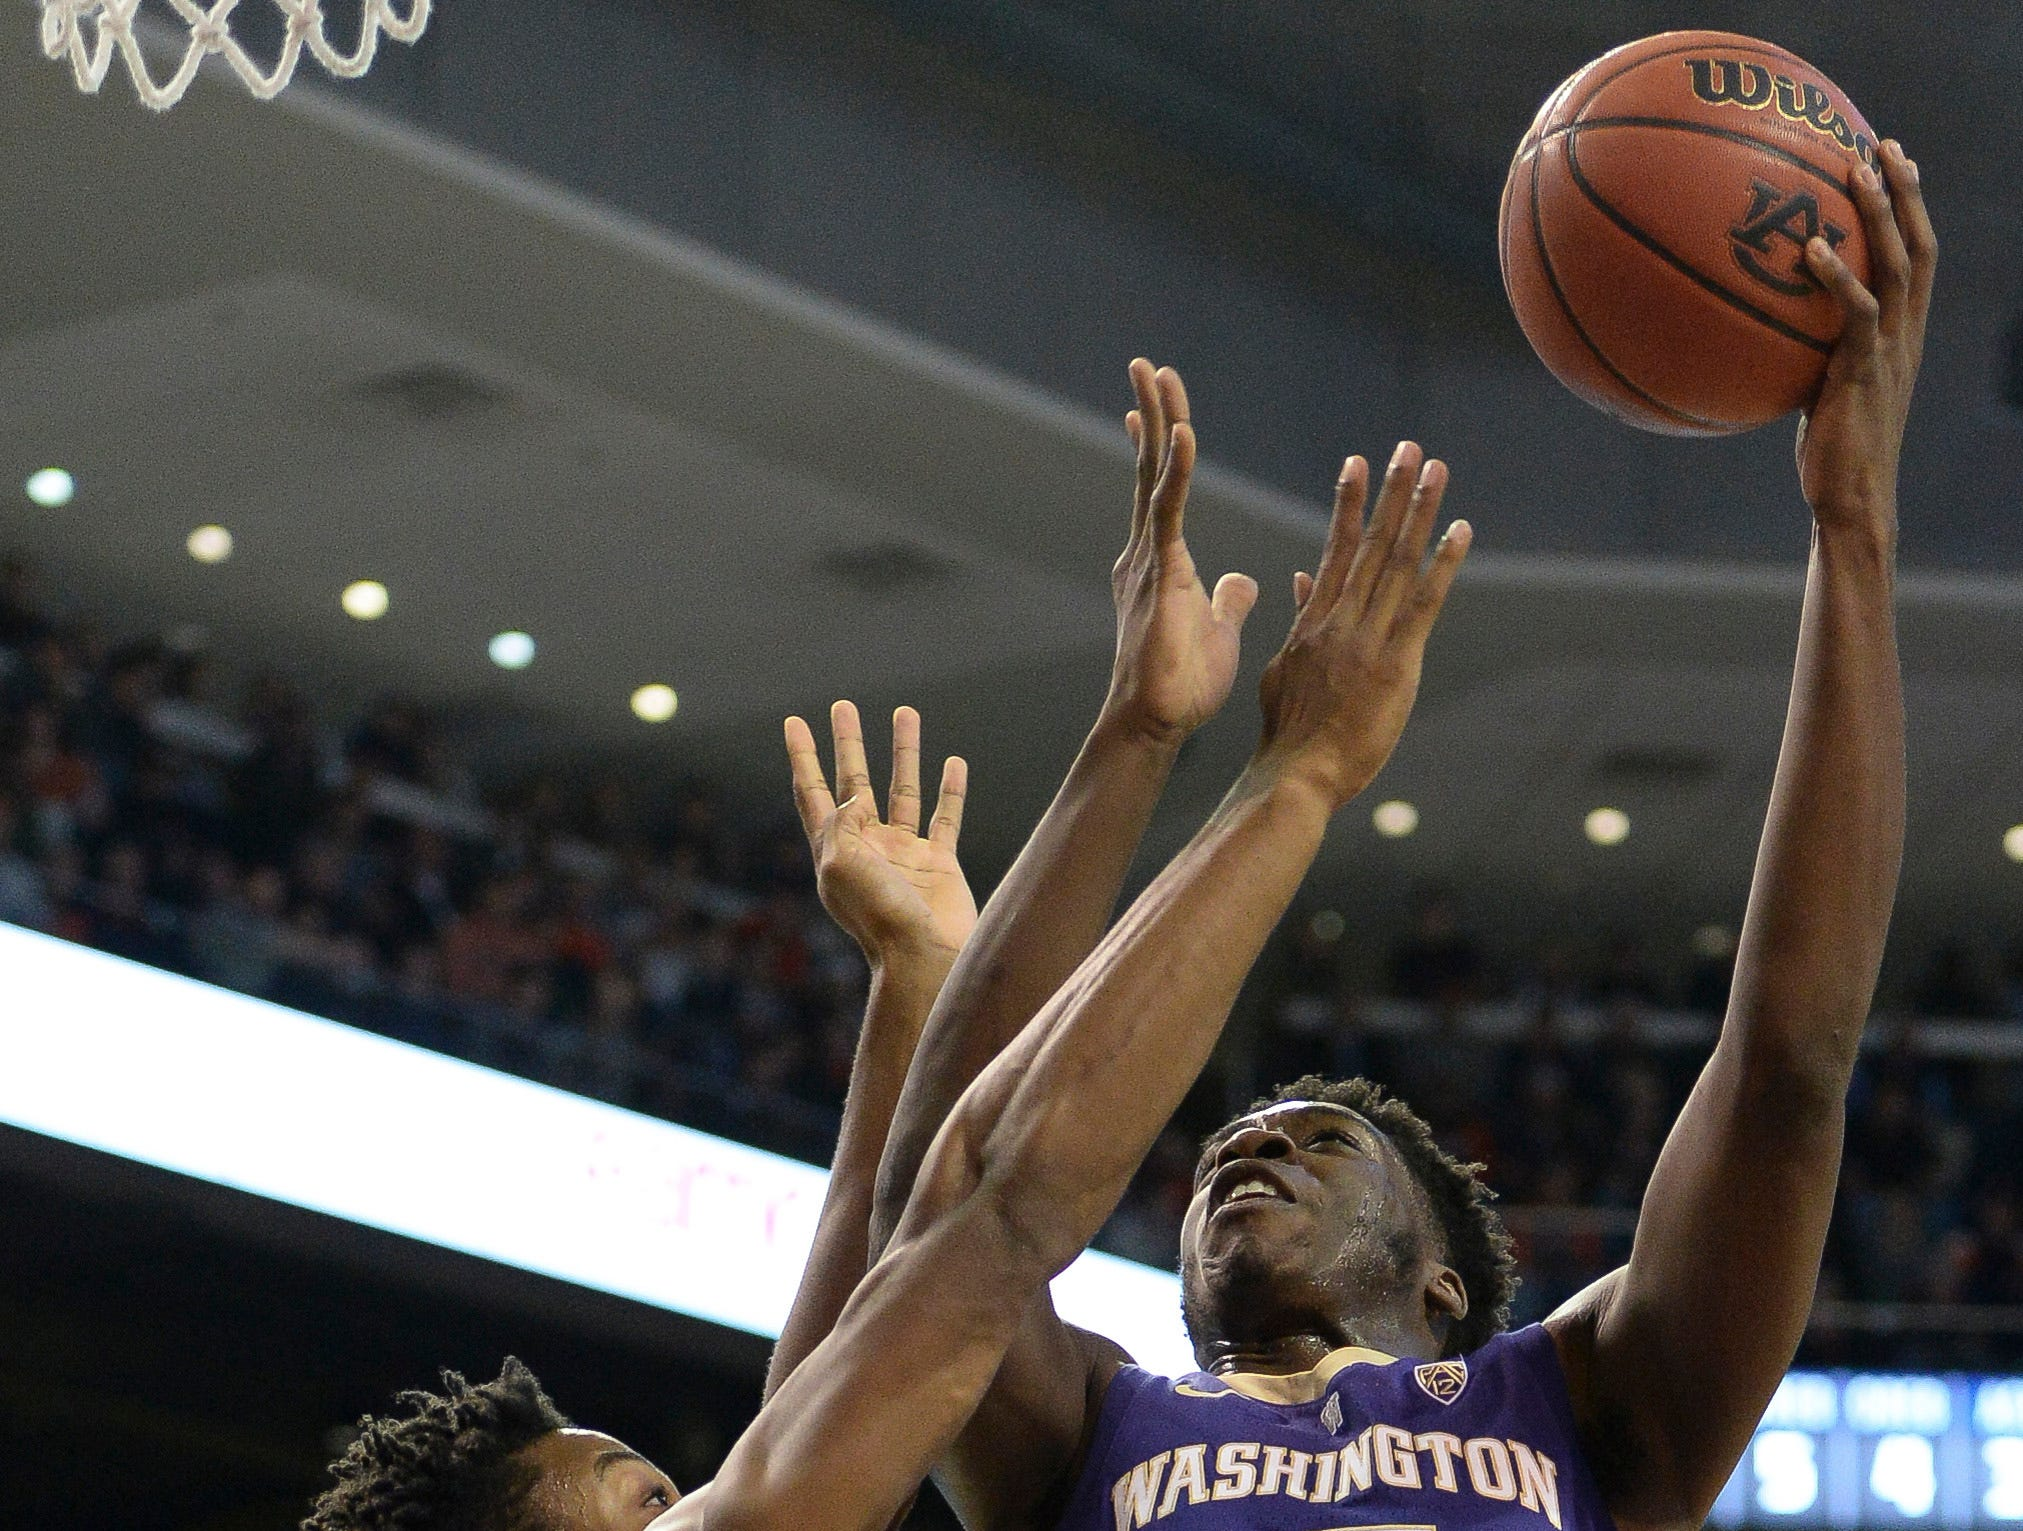 Nov 9, 2018; Auburn, AL, USA; Washington Huskies forward Noah Dickerson (15) shoots over Auburn Tigers forward Anfernee McLemore (24) at Auburn Arena. Mandatory Credit: Julie Bennett-USA TODAY Sports